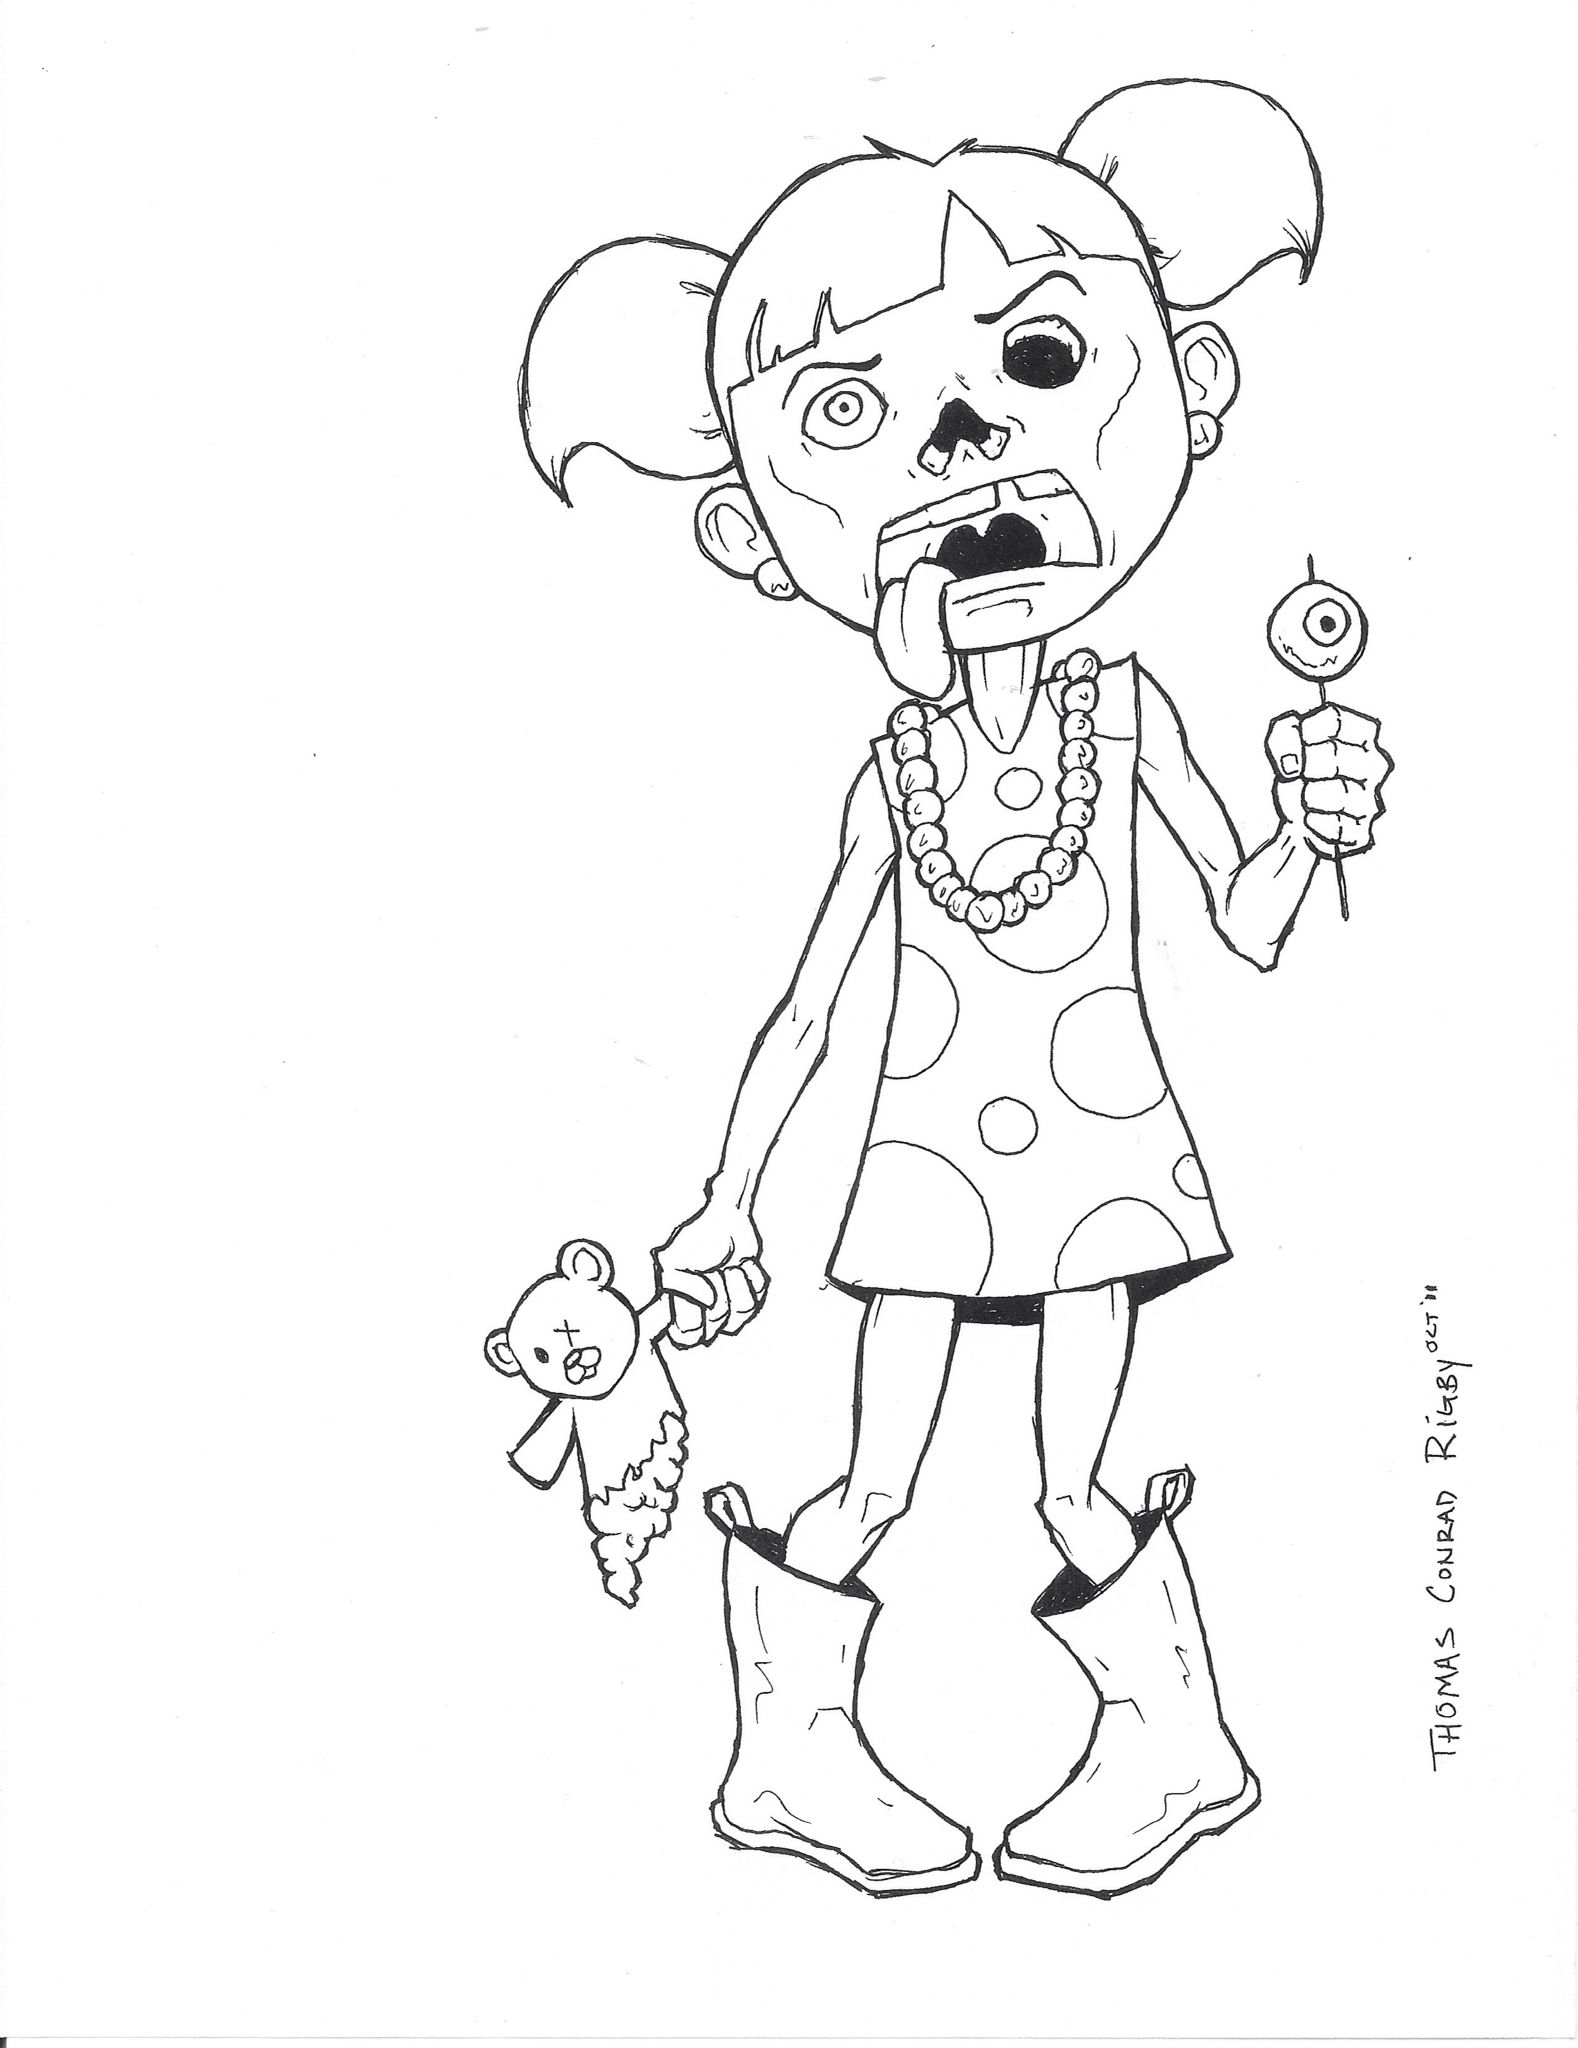 disney channel zombies coloring pages dibujos de zombies de disney channel para colorear disney pages zombies channel coloring